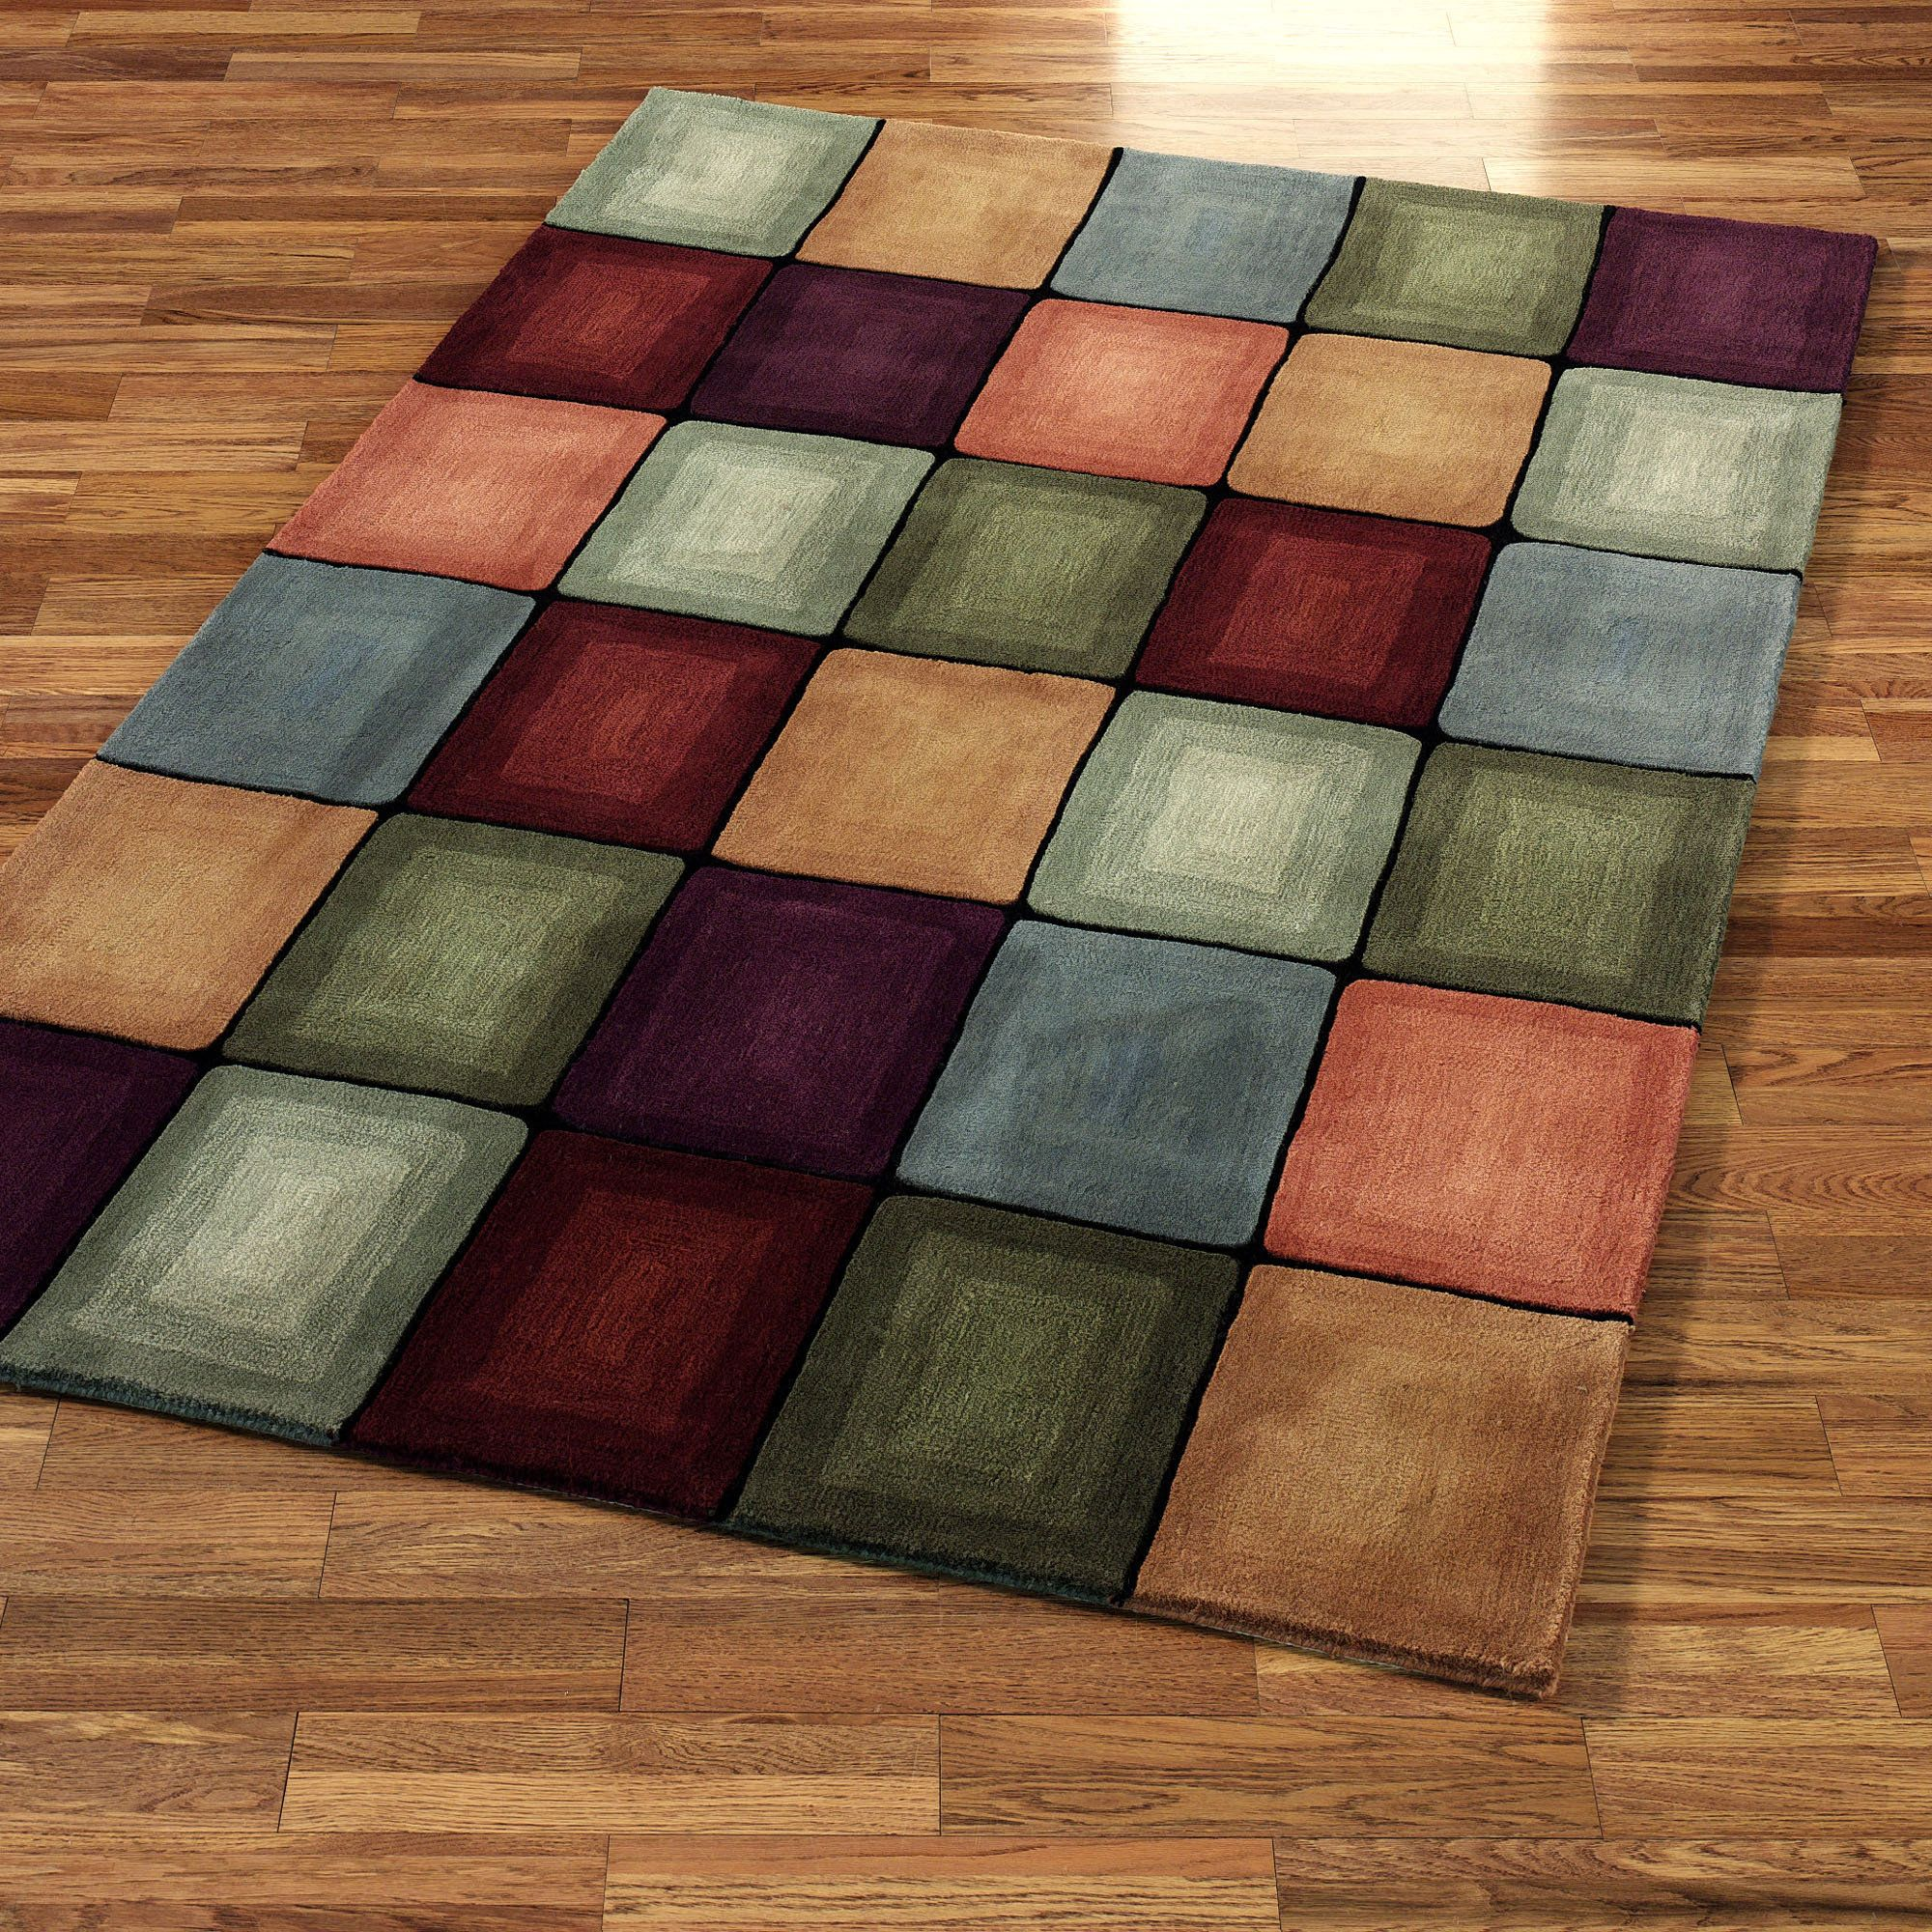 Best contemporary area rug colored squares contemporary for Area carpets and rugs